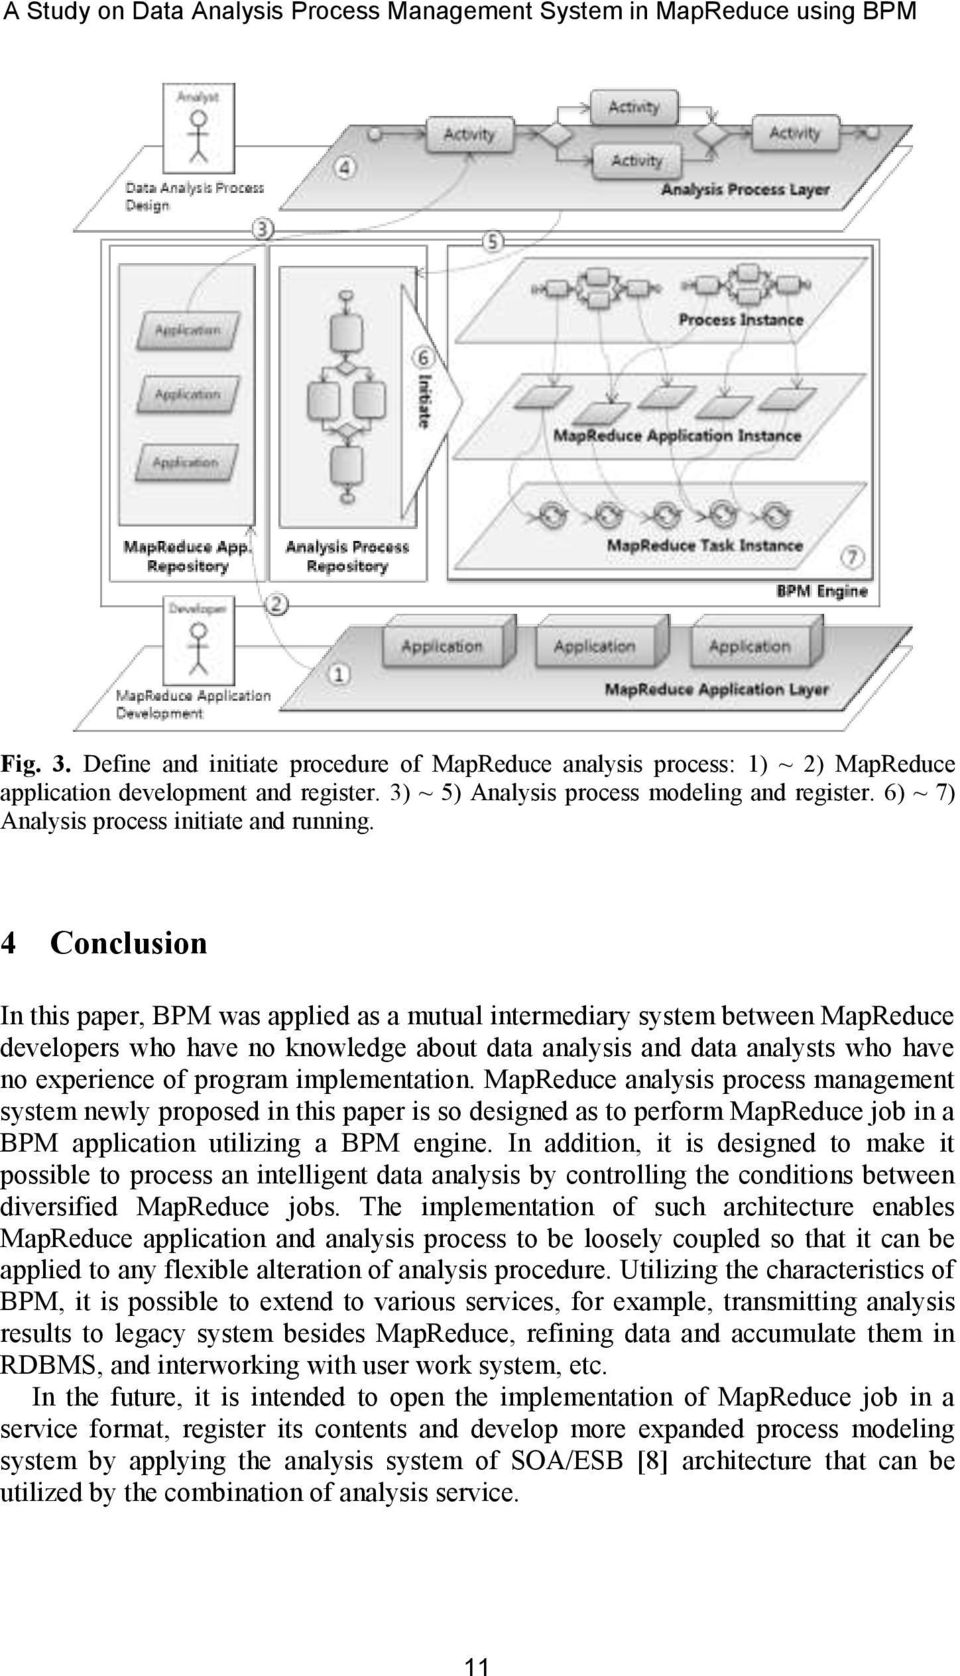 4 Conclusion In this paper, BPM was applied as a mutual intermediary system between MapReduce developers who have no knowledge about data analysis and data analysts who have no experience of program